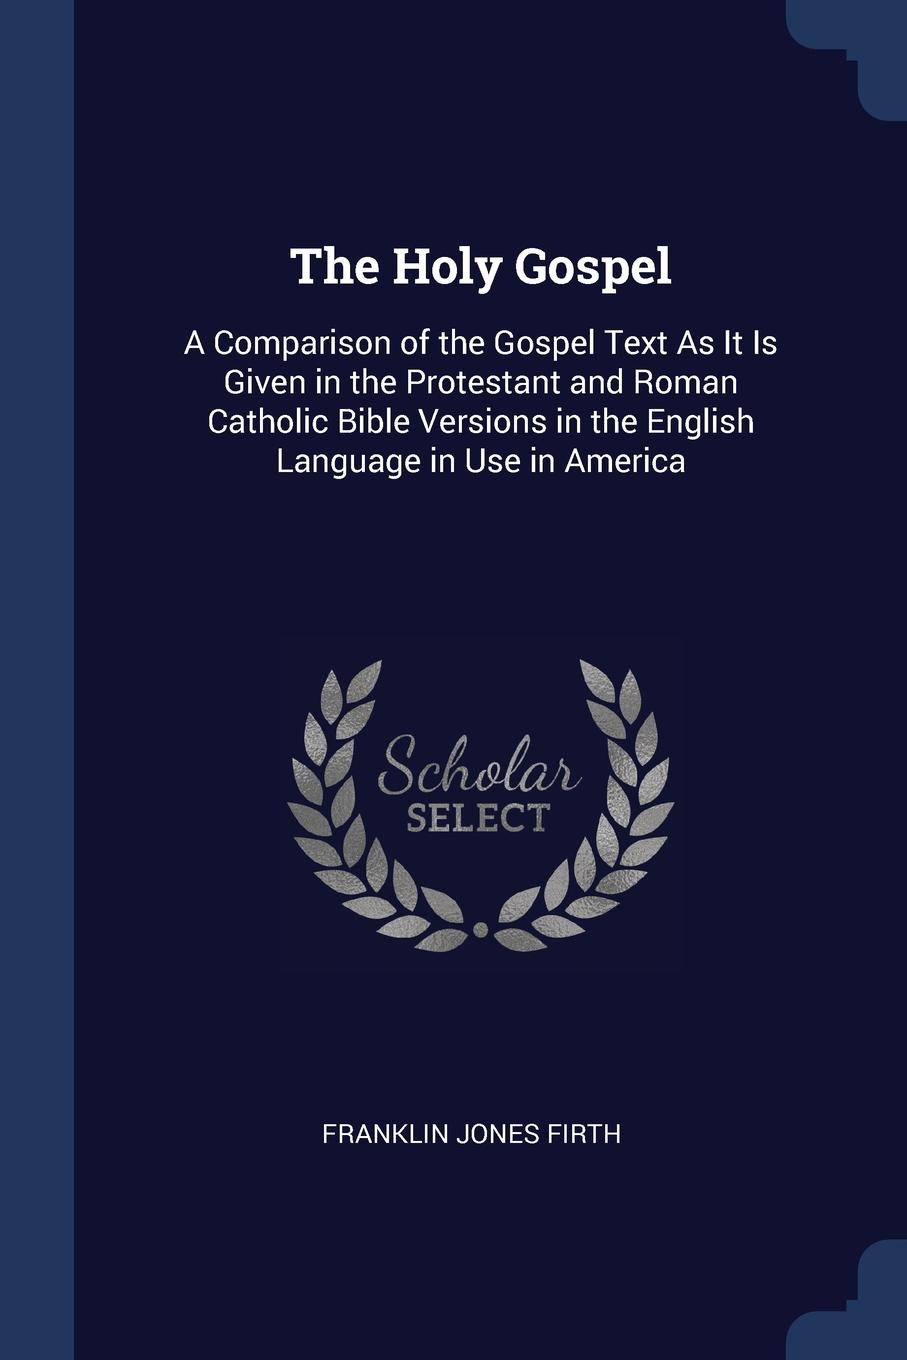 Franklin Jones Firth The Holy Gospel. A Comparison of the Gospel Text As It Is Given in Protestant and Roman Catholic Bible Versions English Language Use America